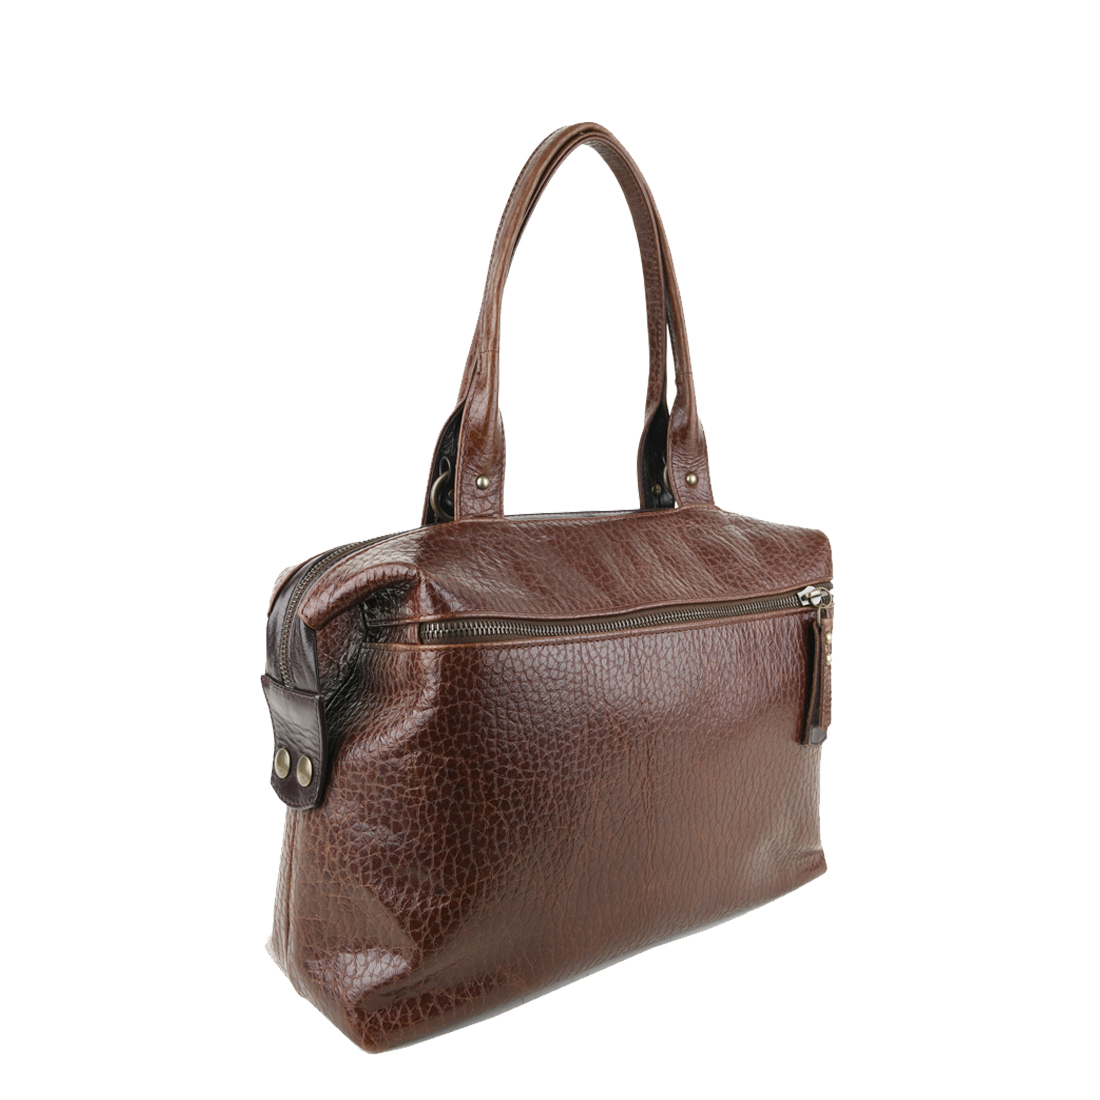 Grace Dark Brown Leather Tote Bag